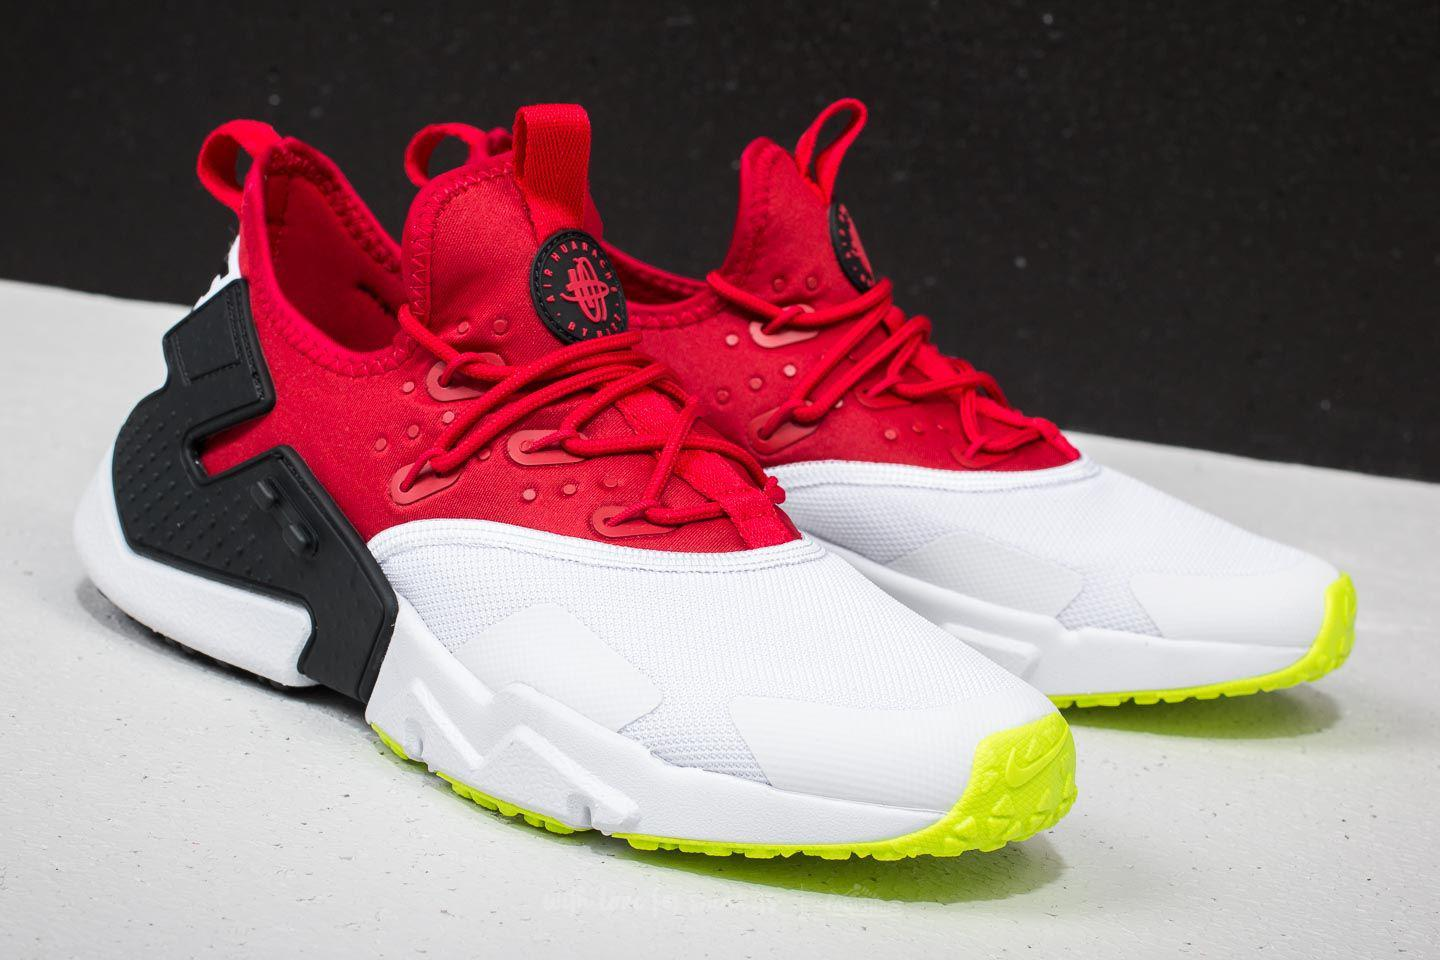 eb7d2c68610a2 ... sweden lyst nike air huarache drift gym red white black volt in red for  men 8f30f